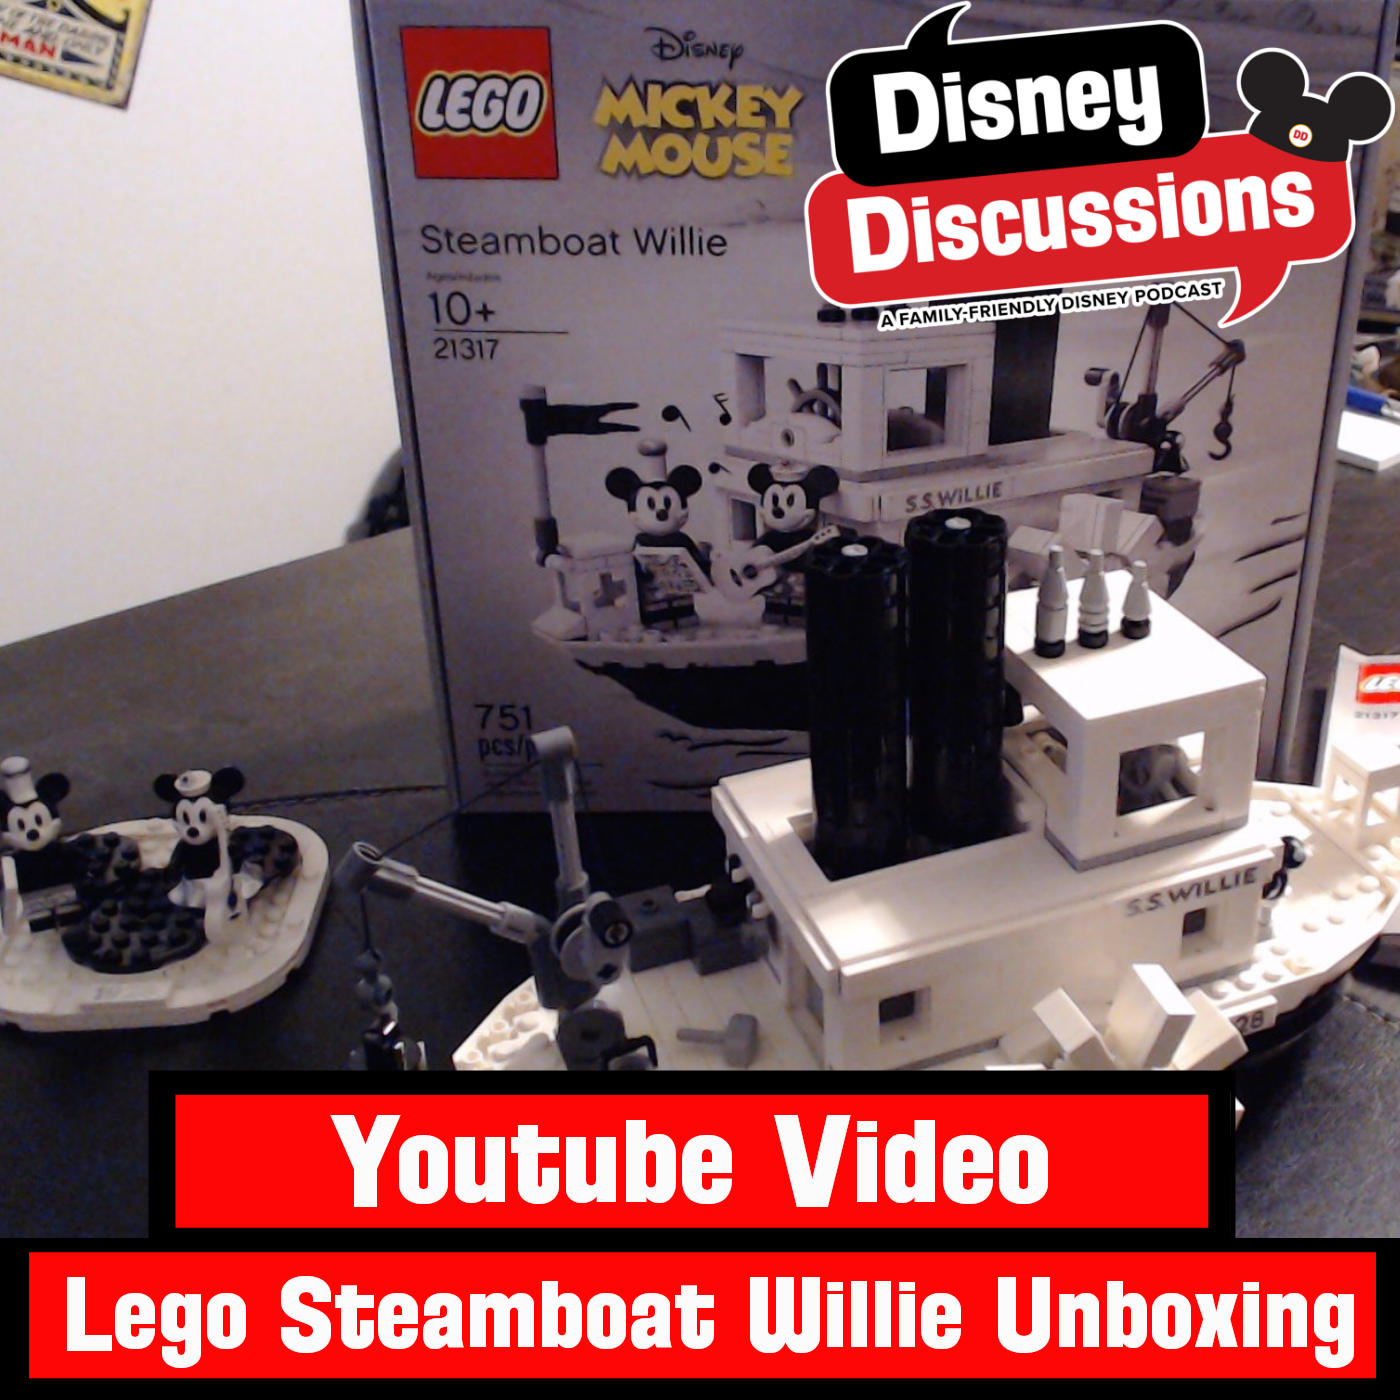 Youtube Video: Lego Steamboat Willie set unboxing and timelapse